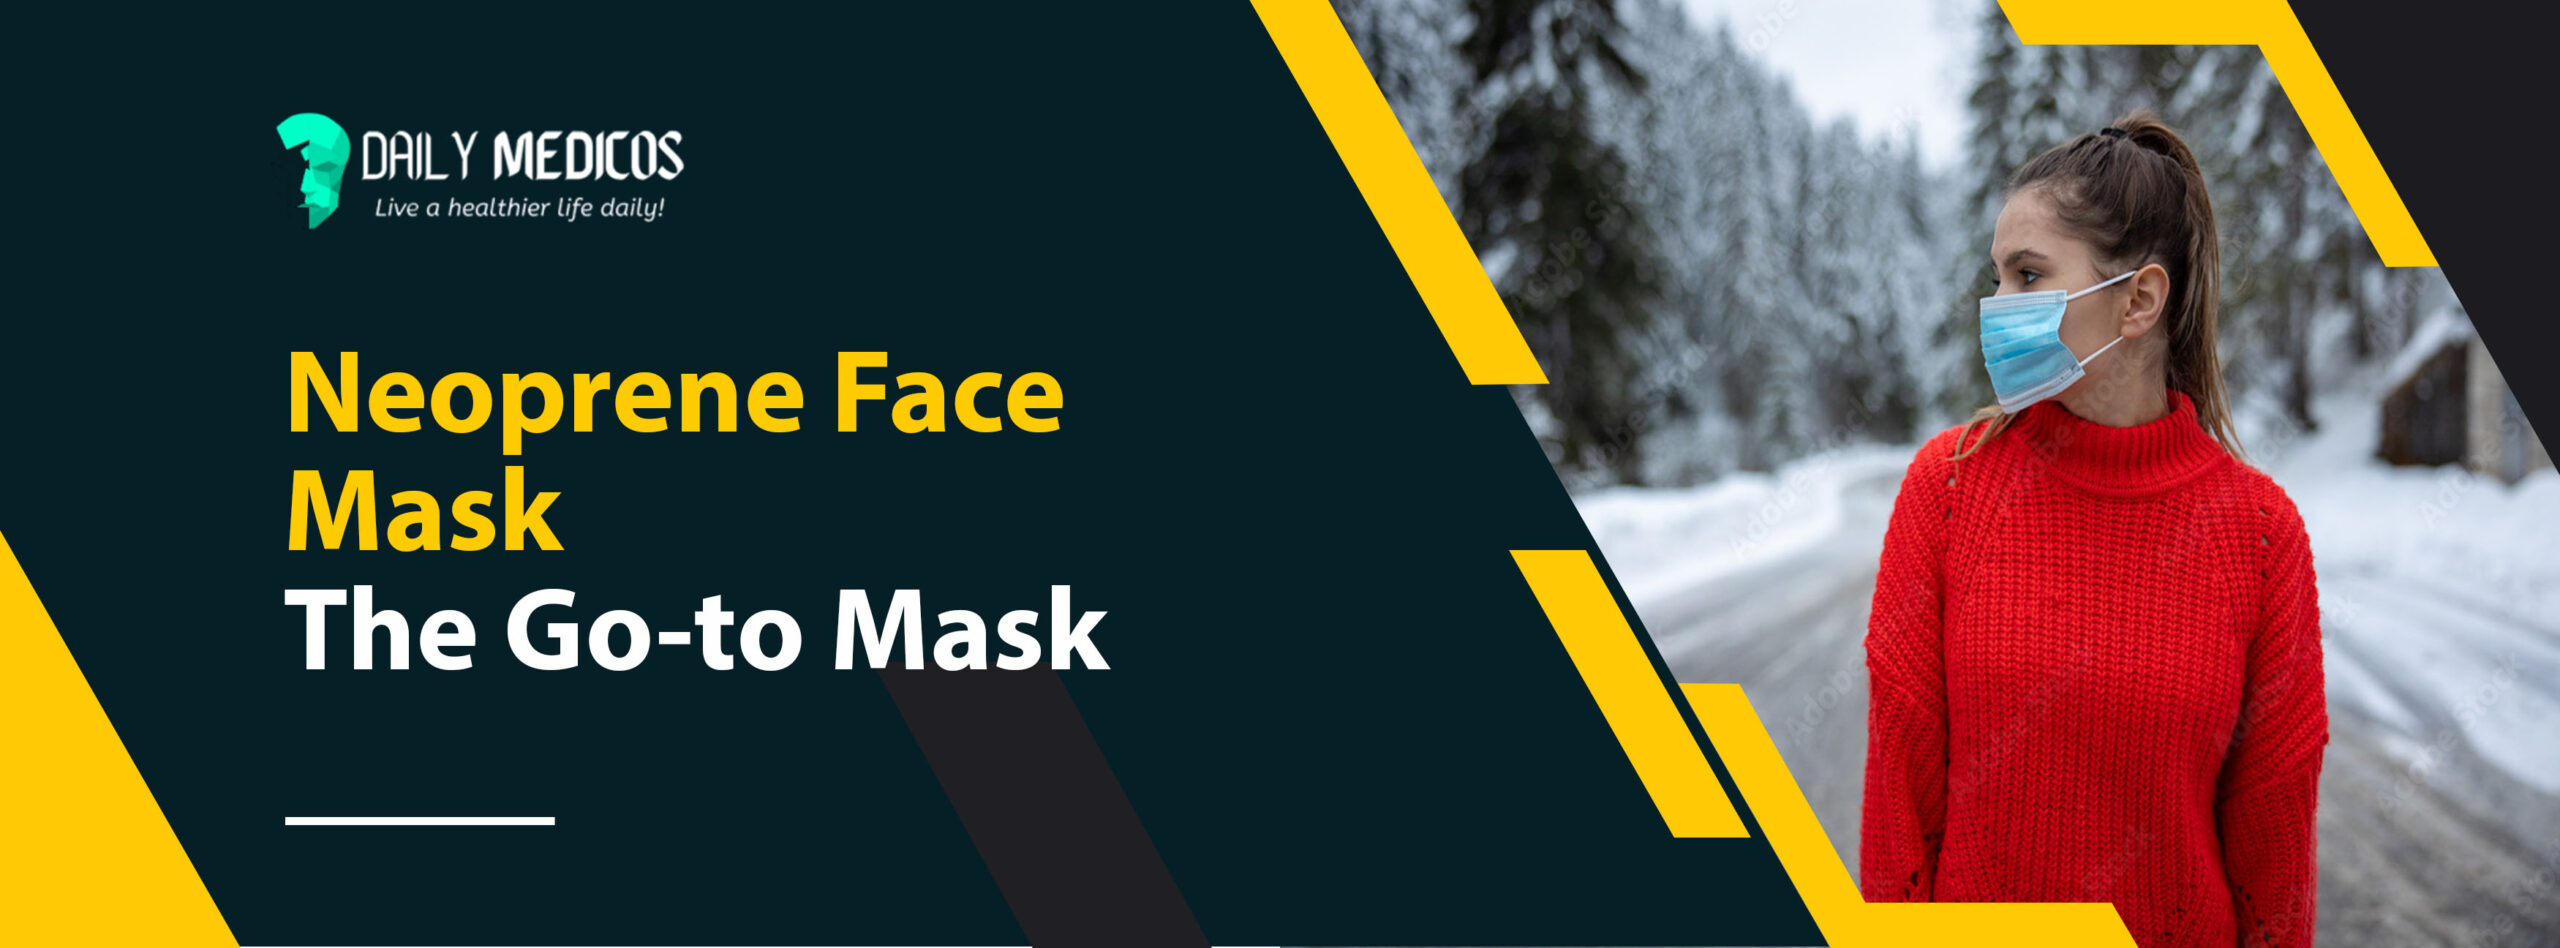 Neoprene Face Mask: The Go-to Mask [Choose The Best for Yourself] 1 - Daily Medicos